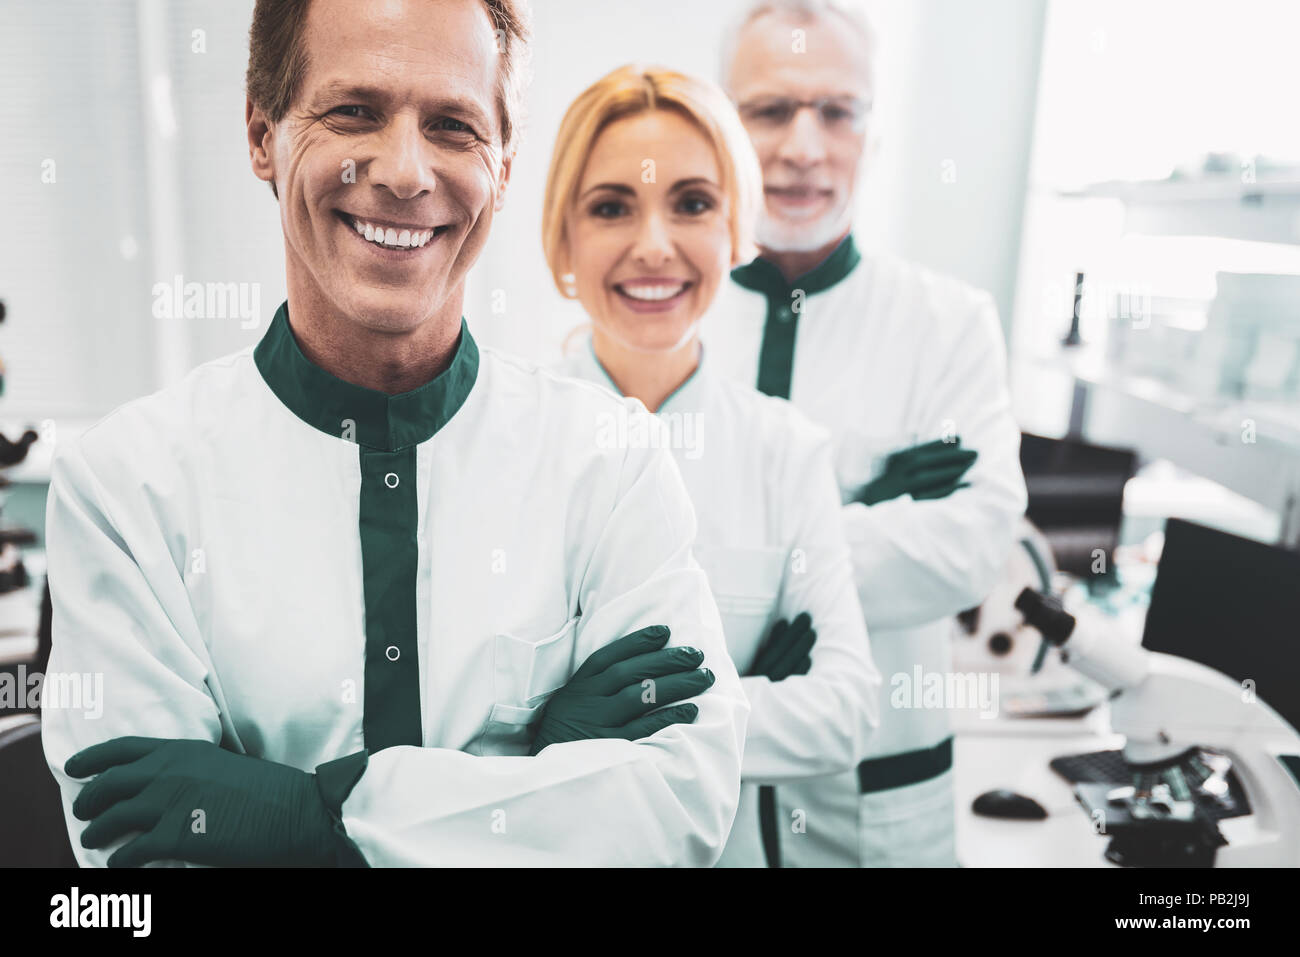 Professional chemists smiling while achieving great results - Stock Image